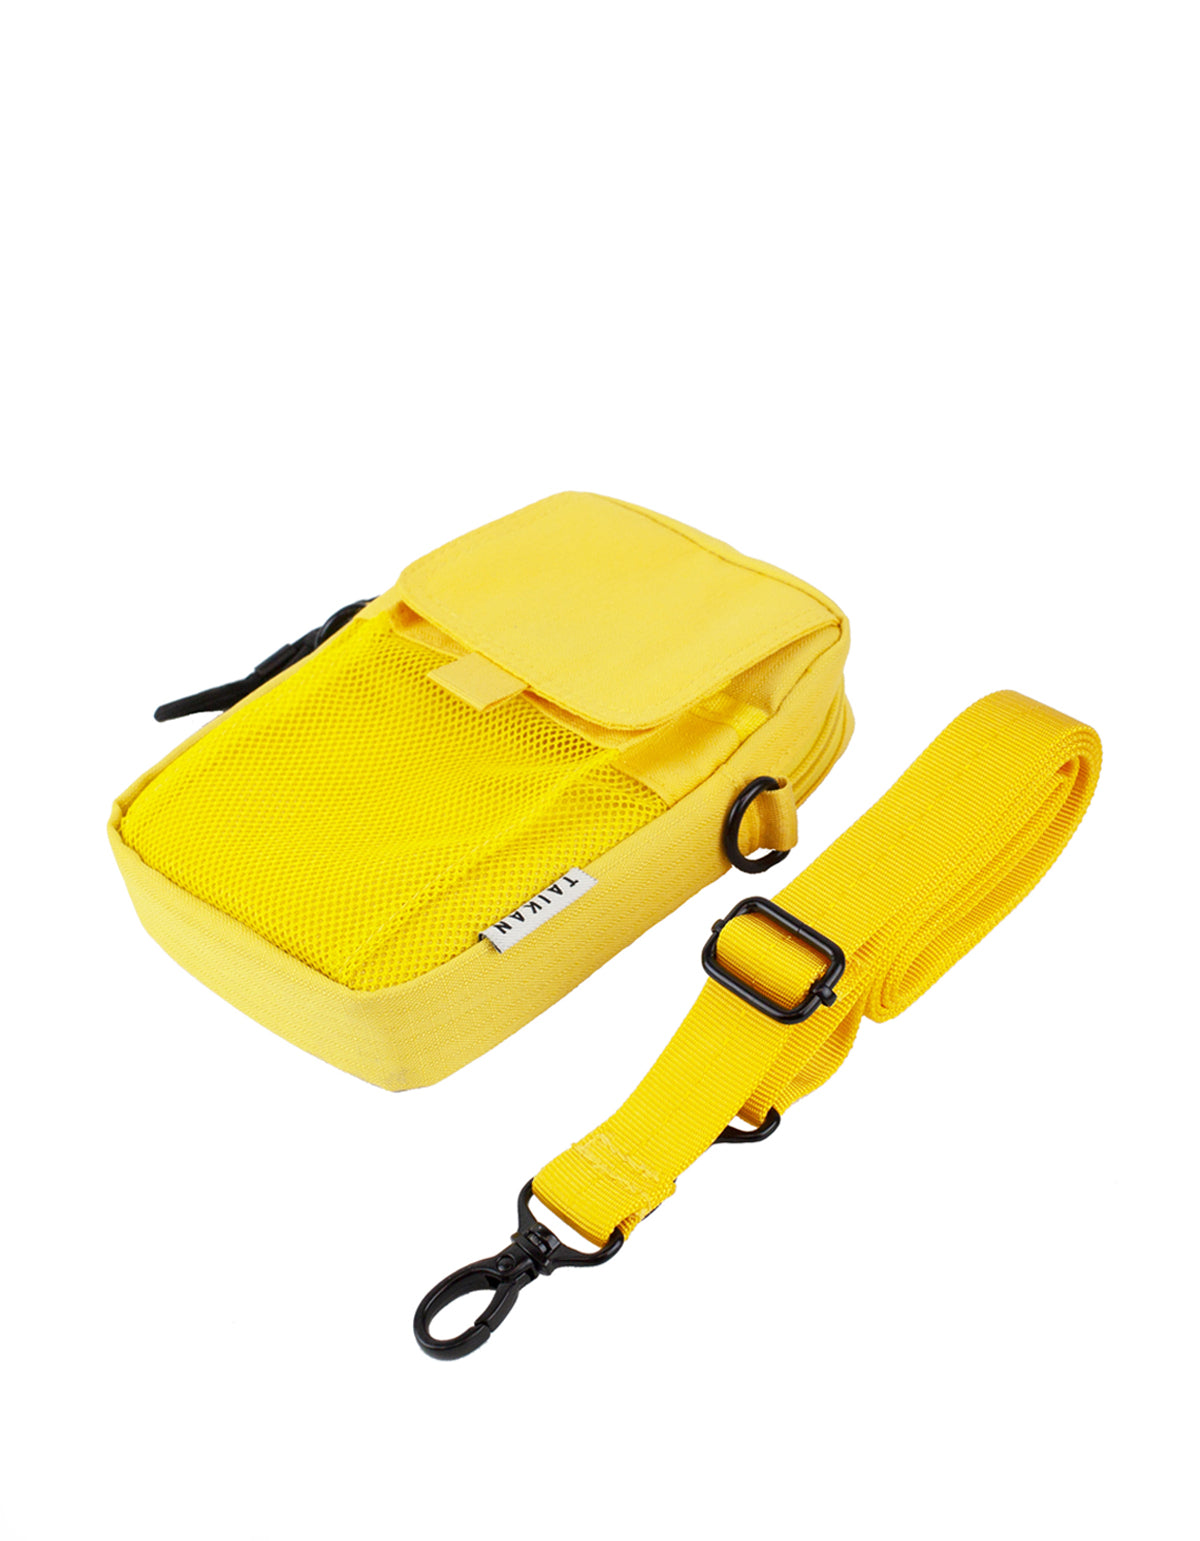 Taikan Raven Camera Bag Yellow Mesh